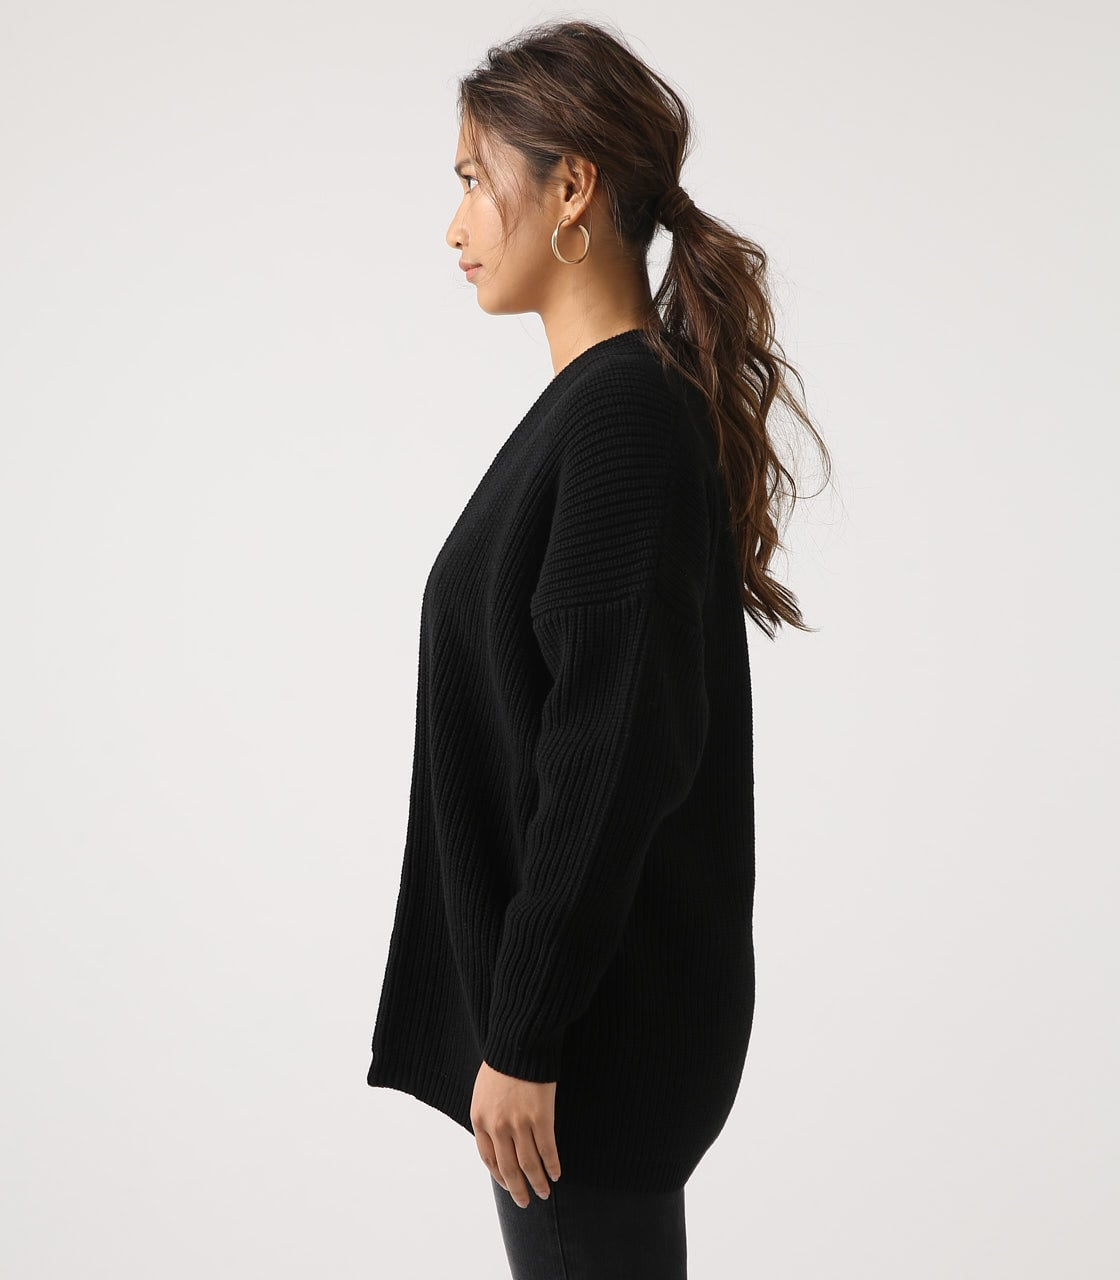 【AZUL BY MOUSSY】LOWGAUGE LONG KNIT CARDIGAN 詳細画像 BLK 6